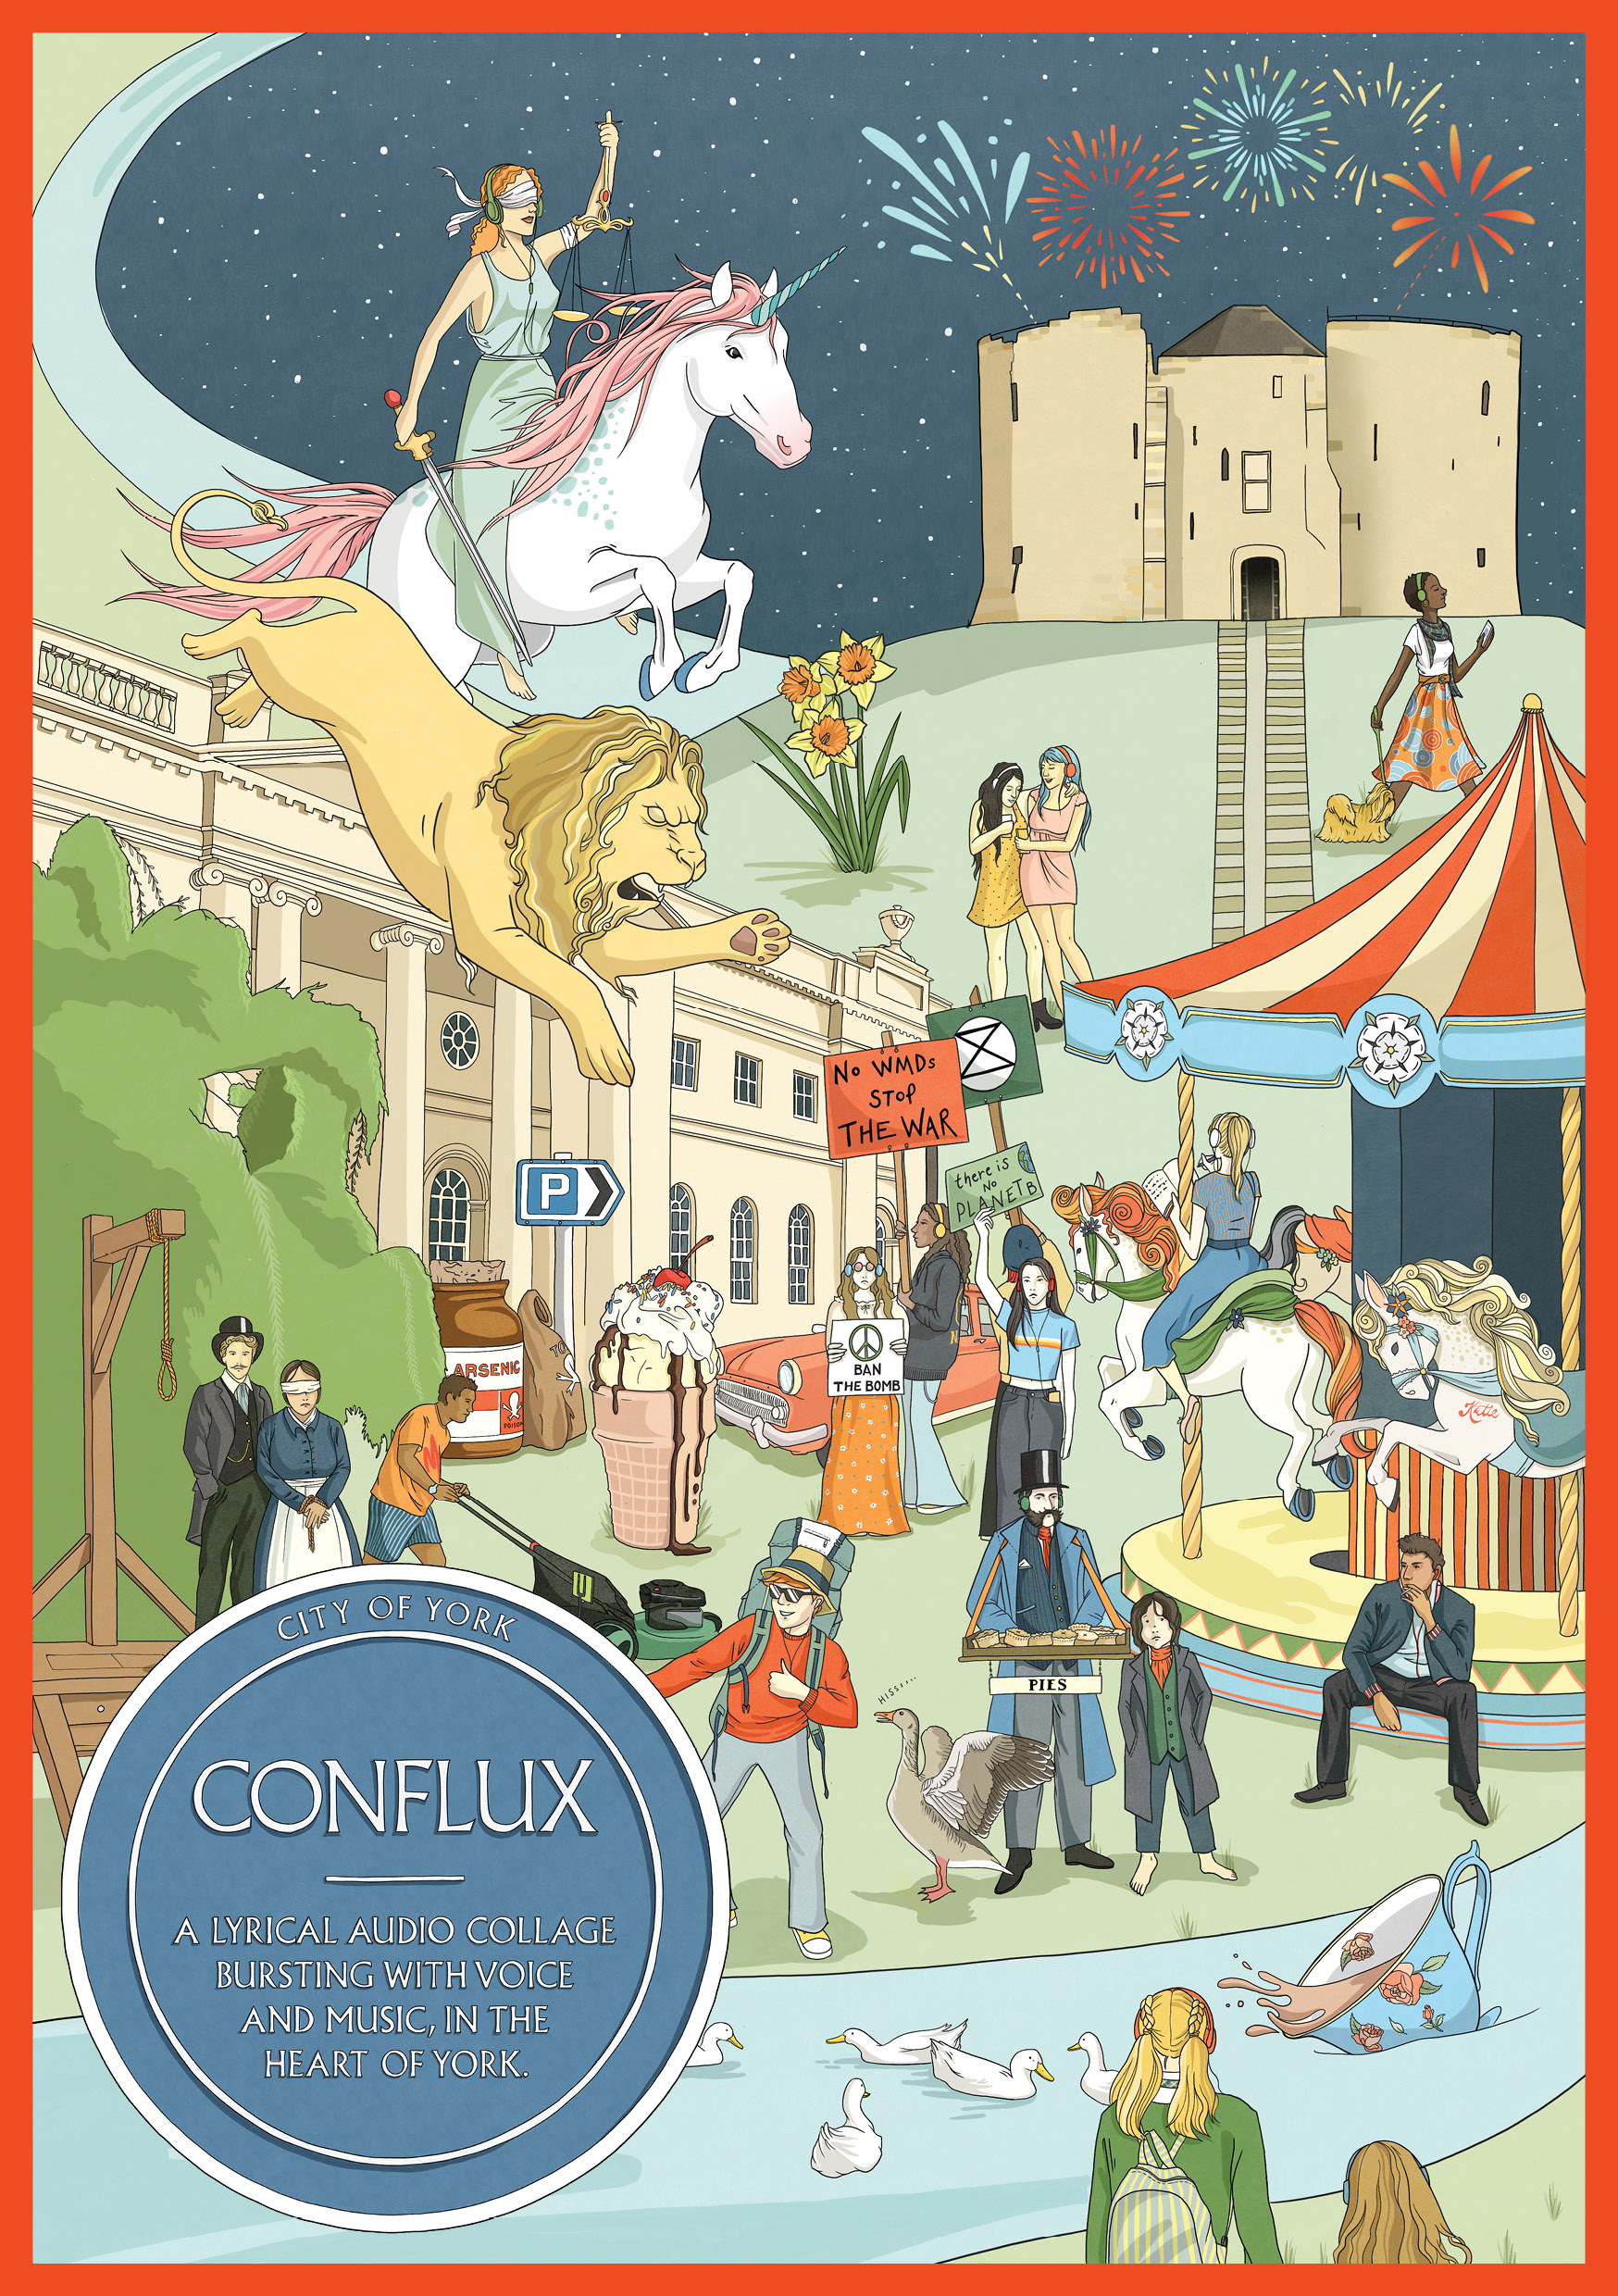 Conflux – A journey through York's oldest site of stronghold, power and resistance